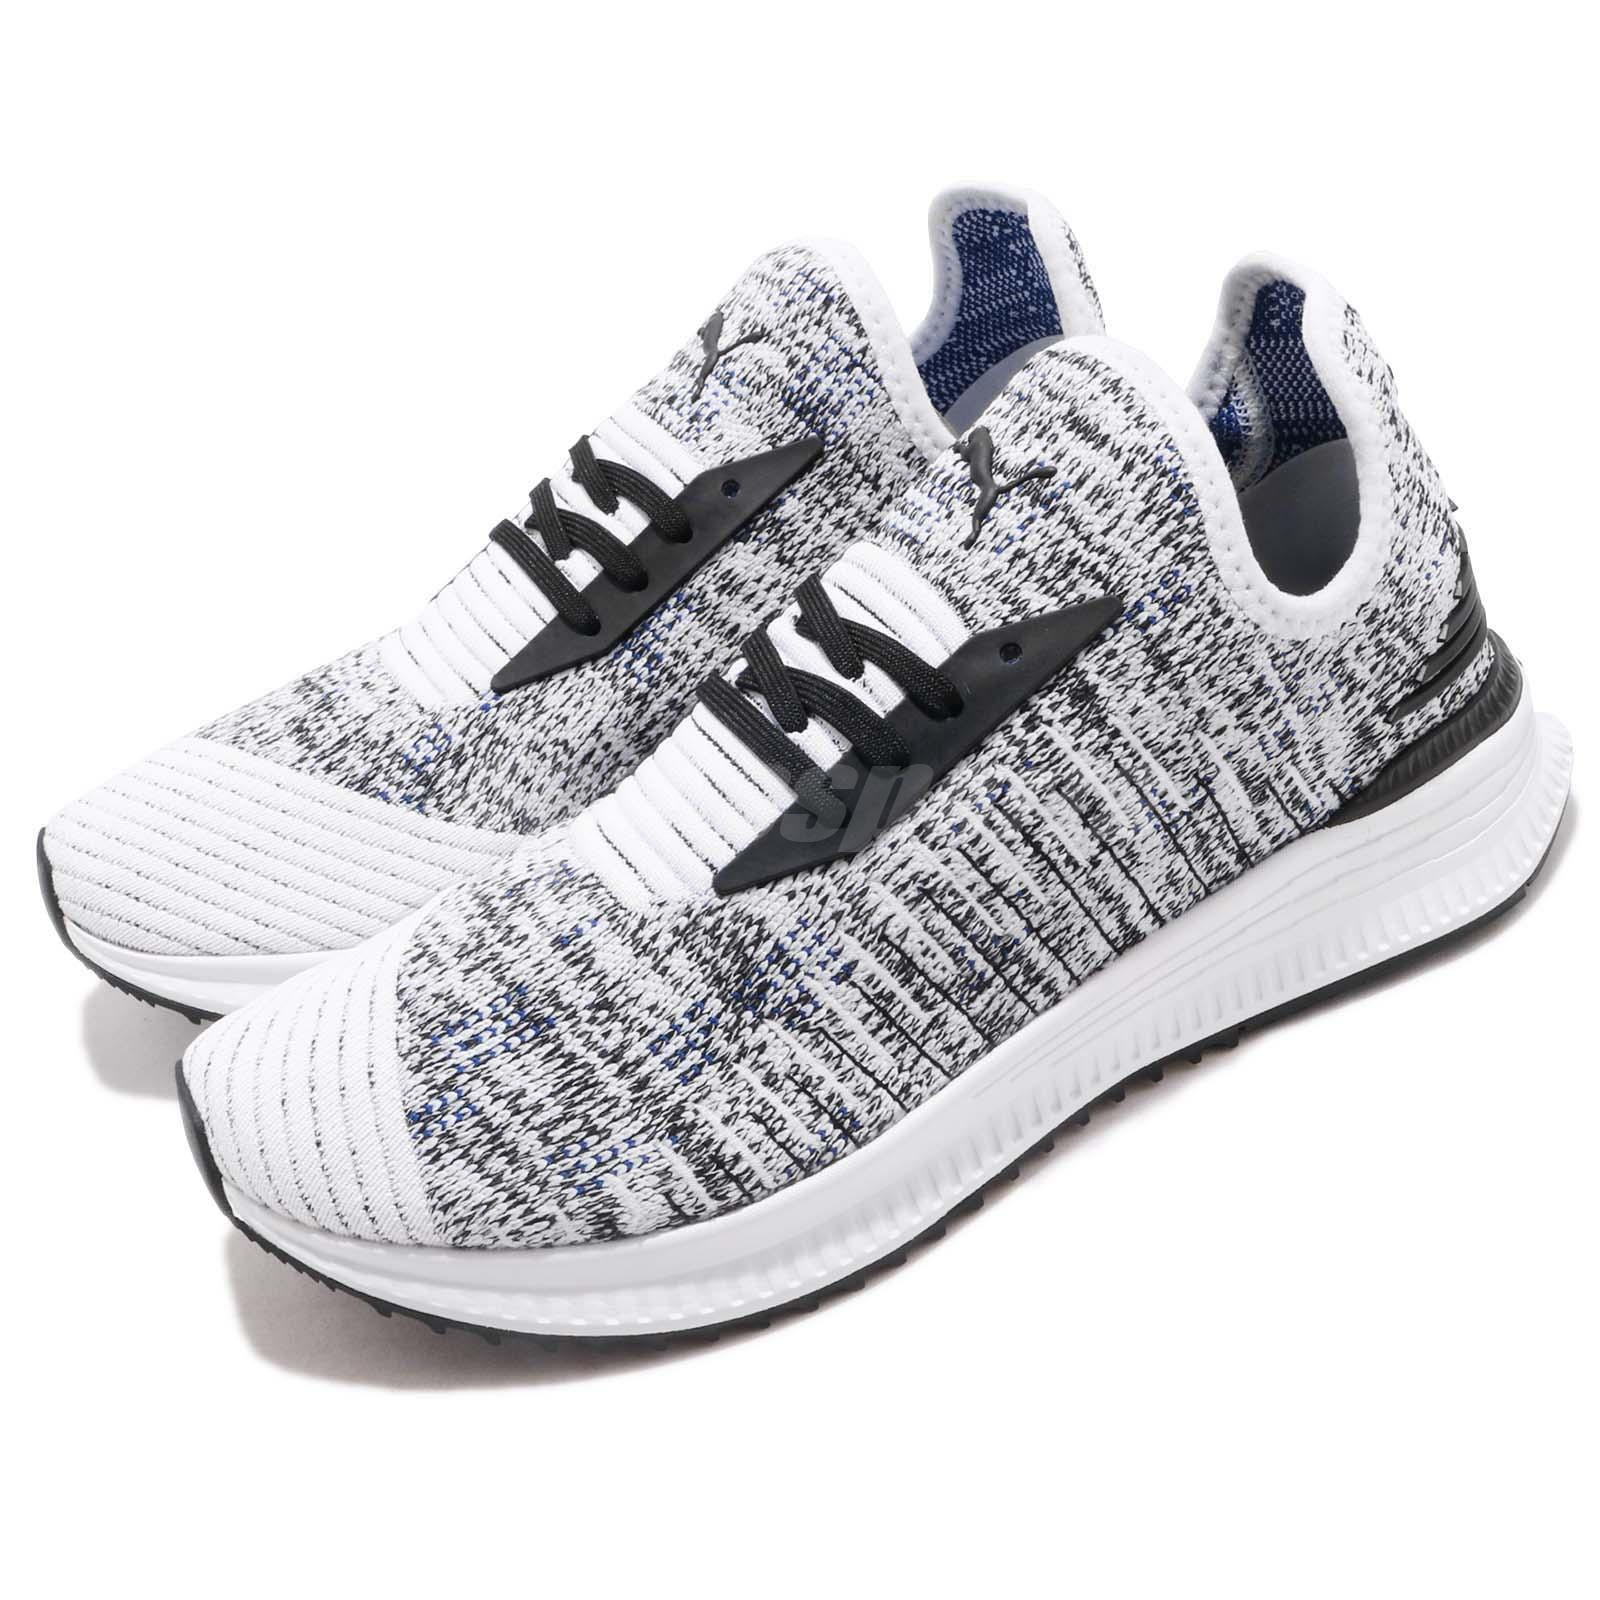 914f4fa8fba6be Details about Puma AVID EvoKnit Mosaic White Black Oreo Mens Womens Running  Shoes 366601-06